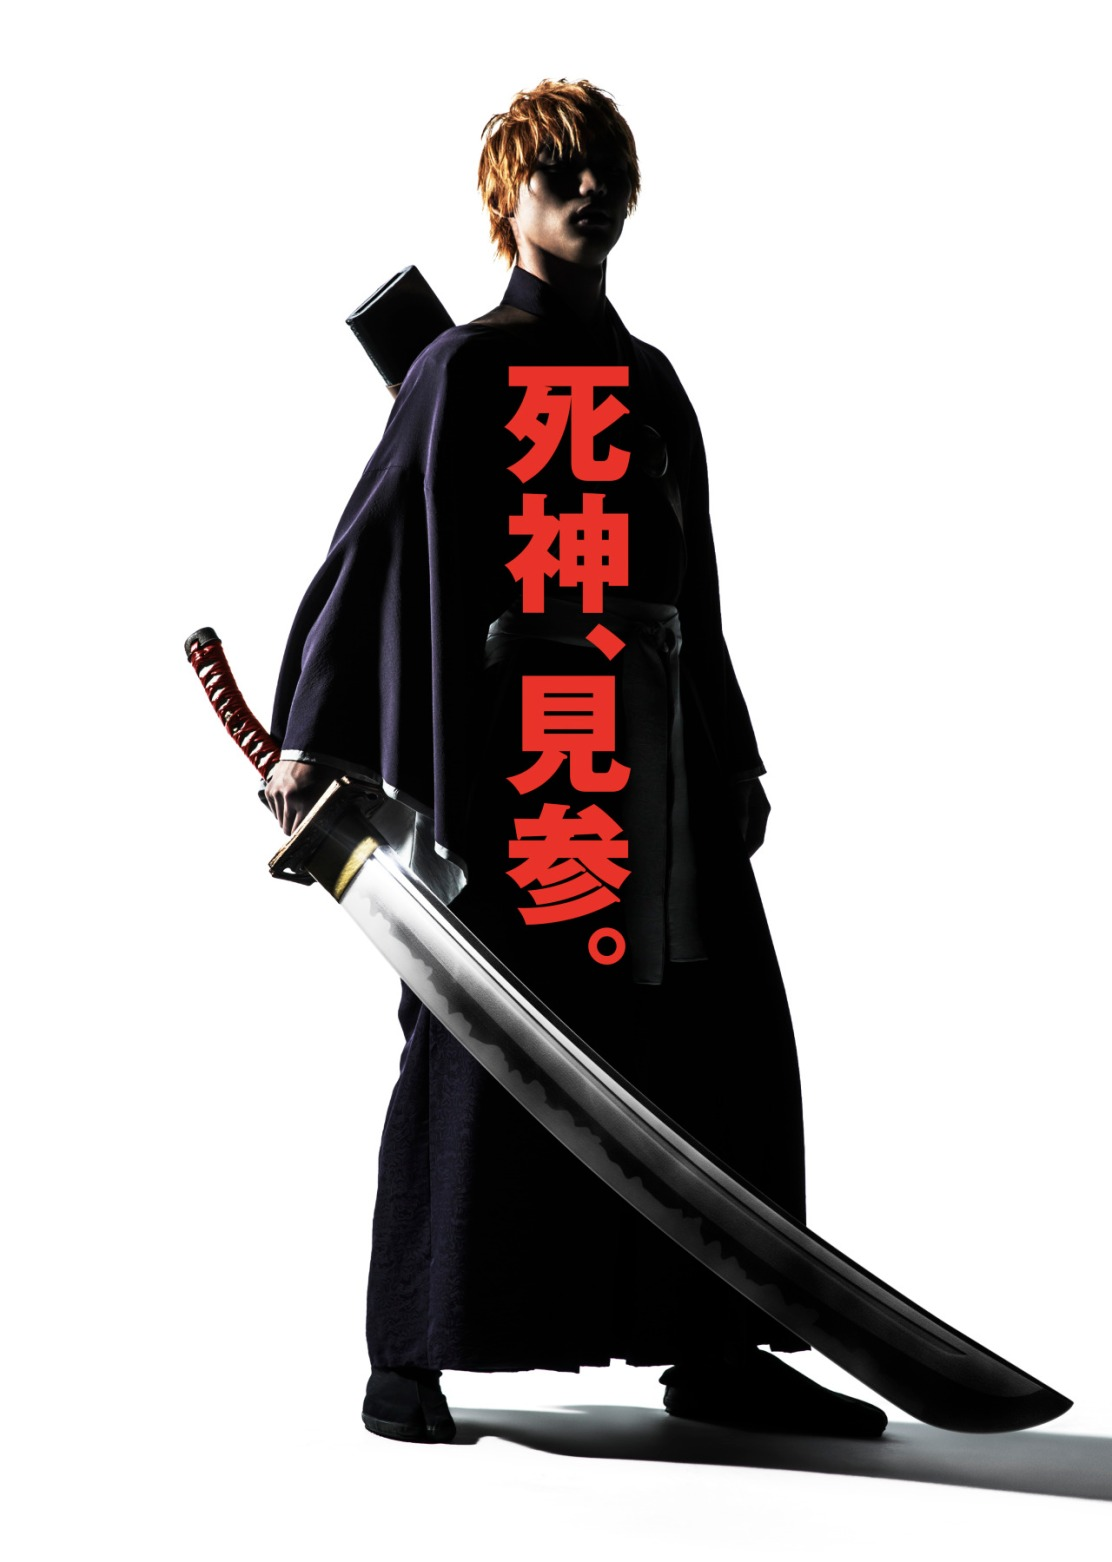 Live Action Bleach Film Teaser Trailer And Visuals